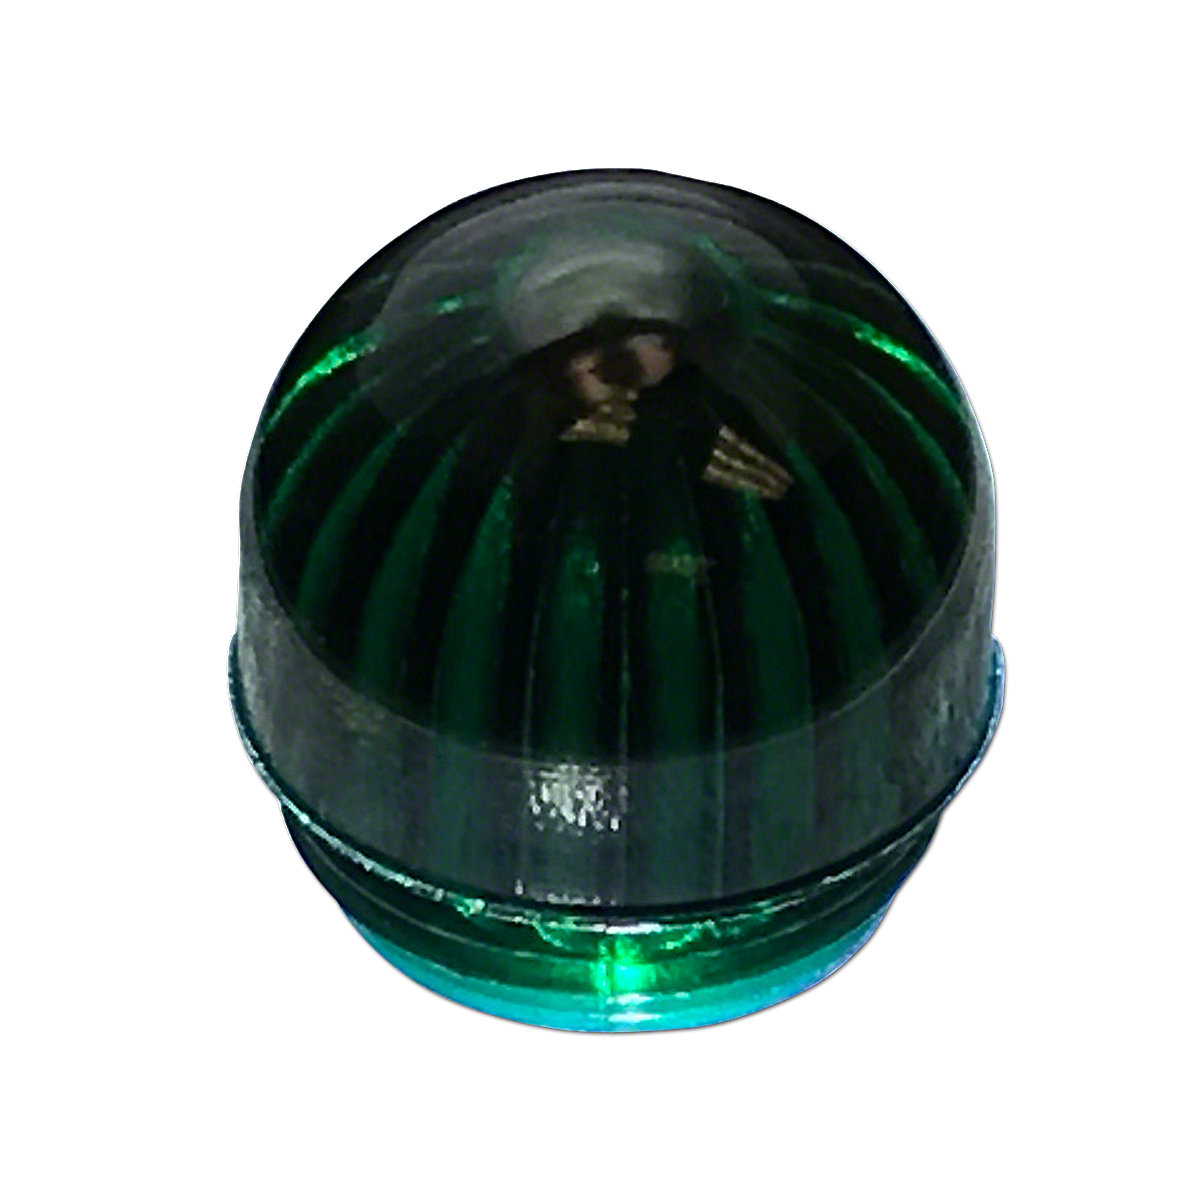 ABC3985 Green Dome Lens only for Dash Warning Light